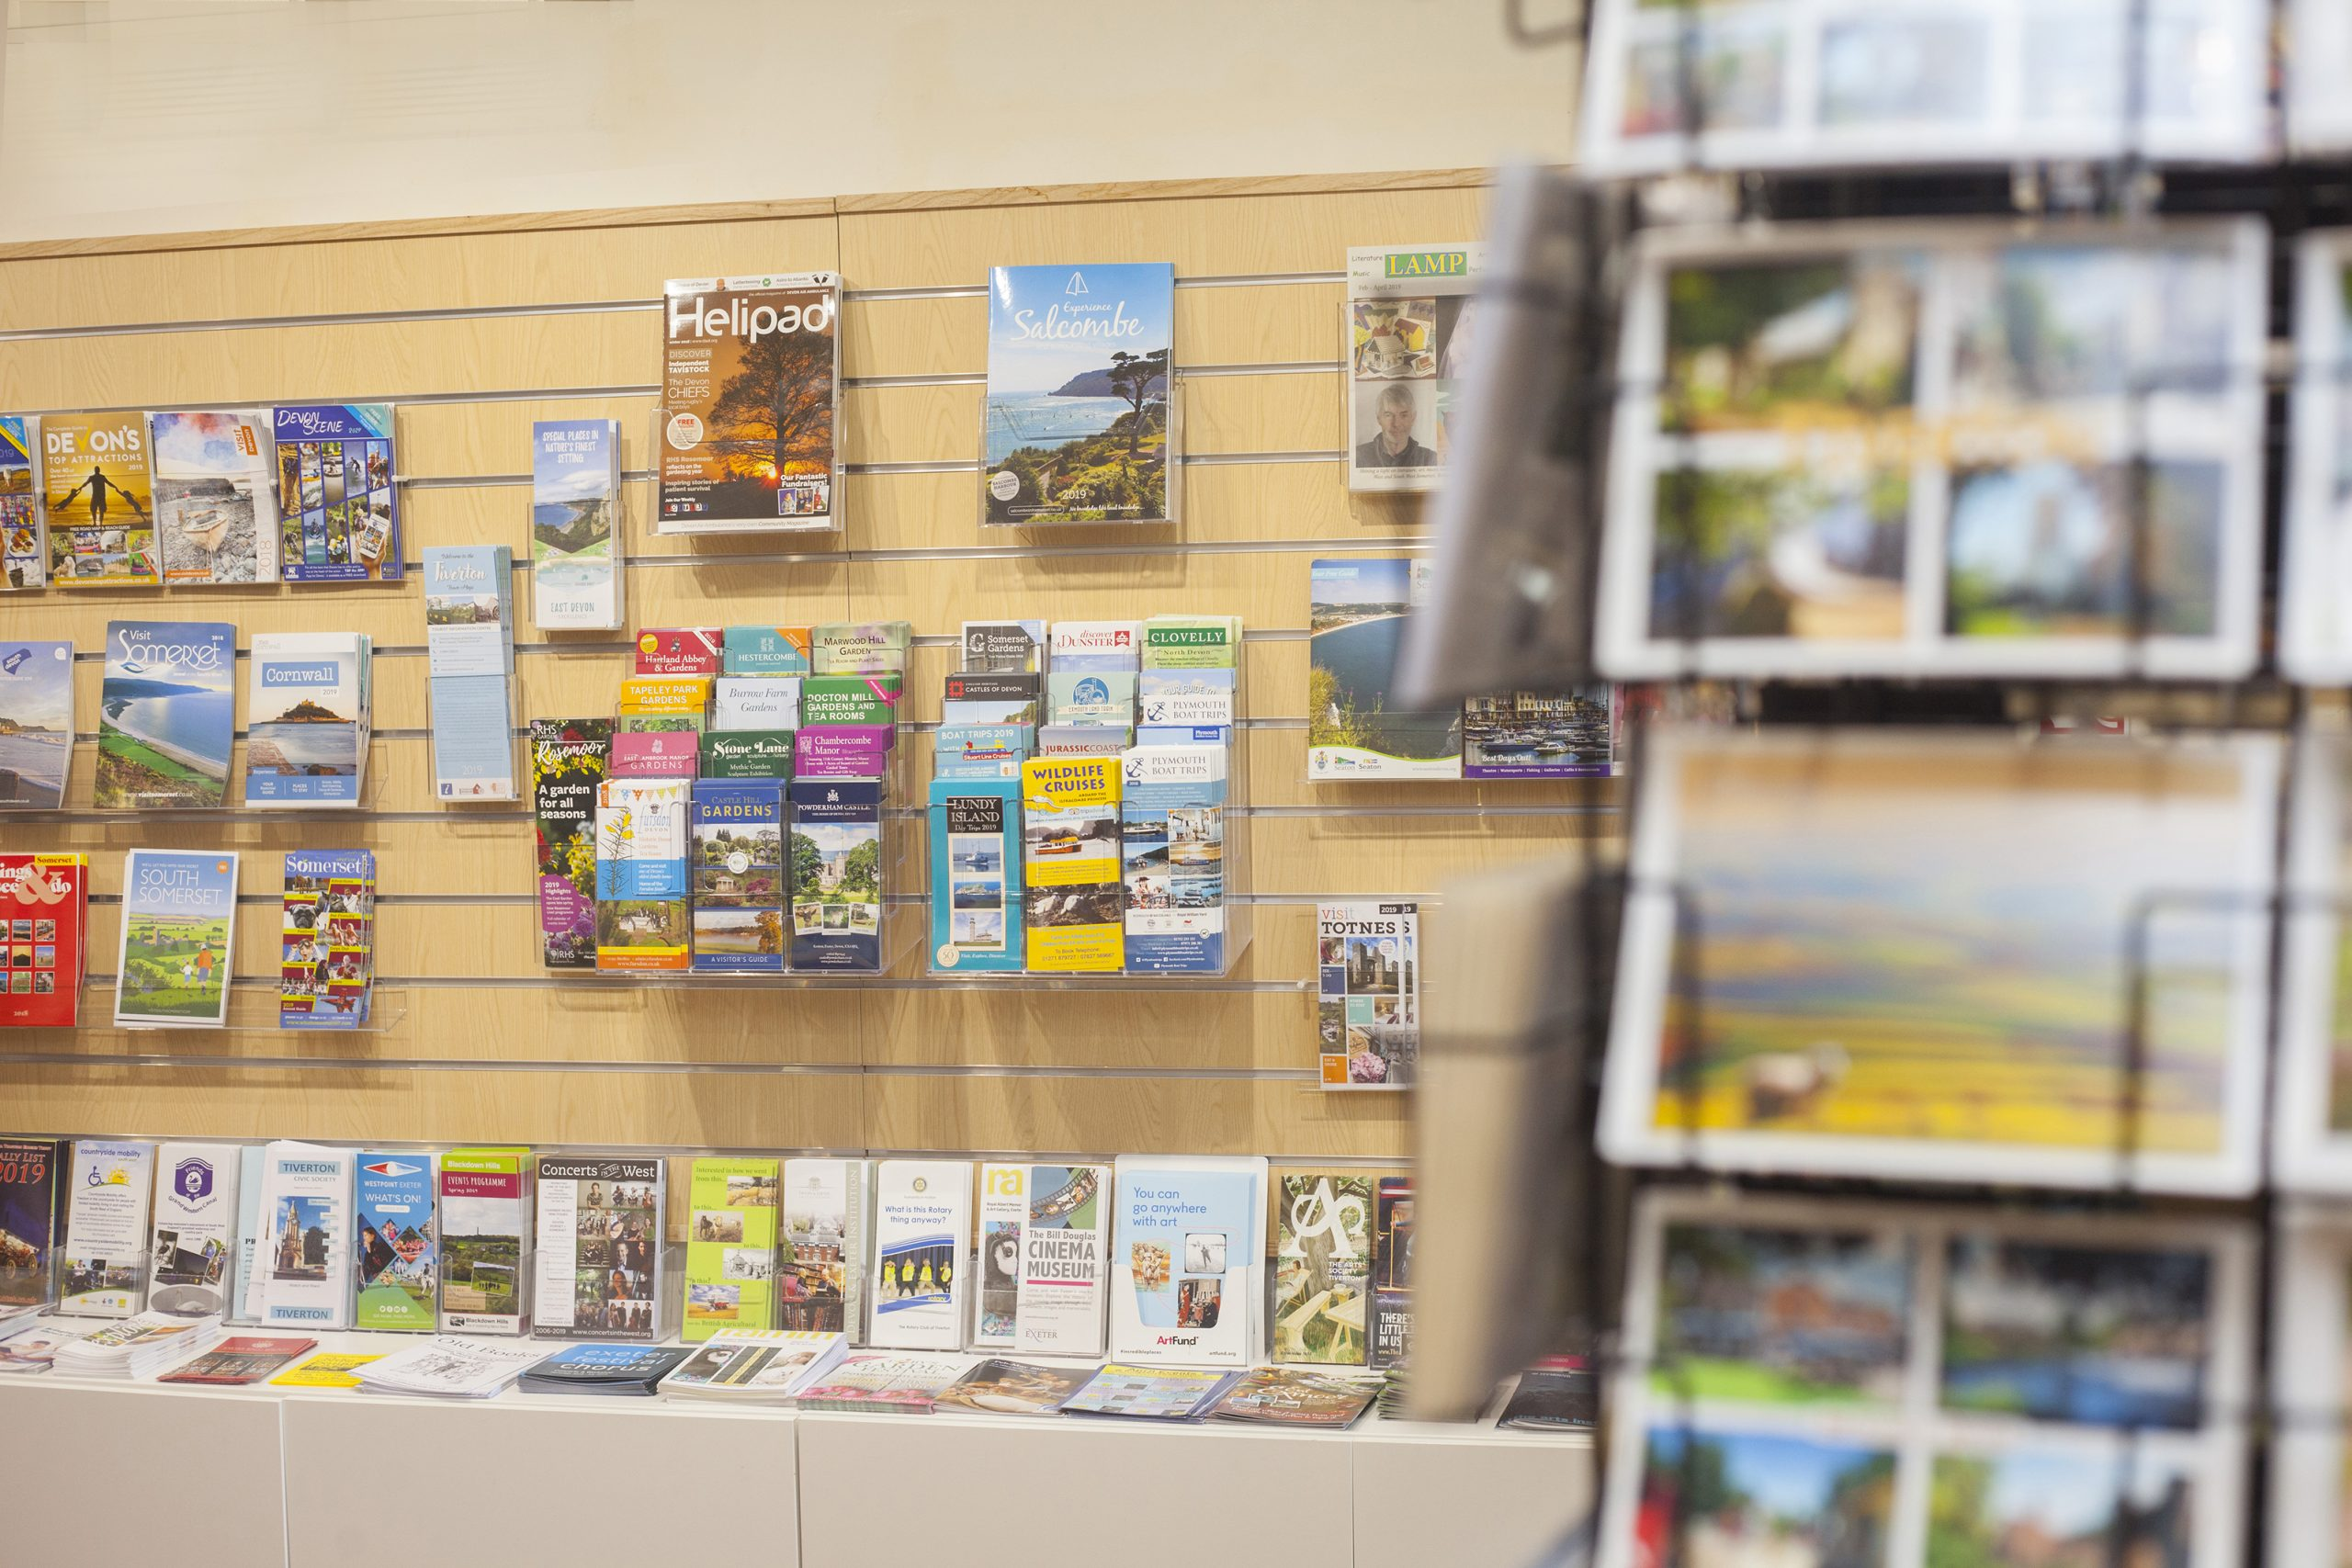 A display of tourist information leaflets